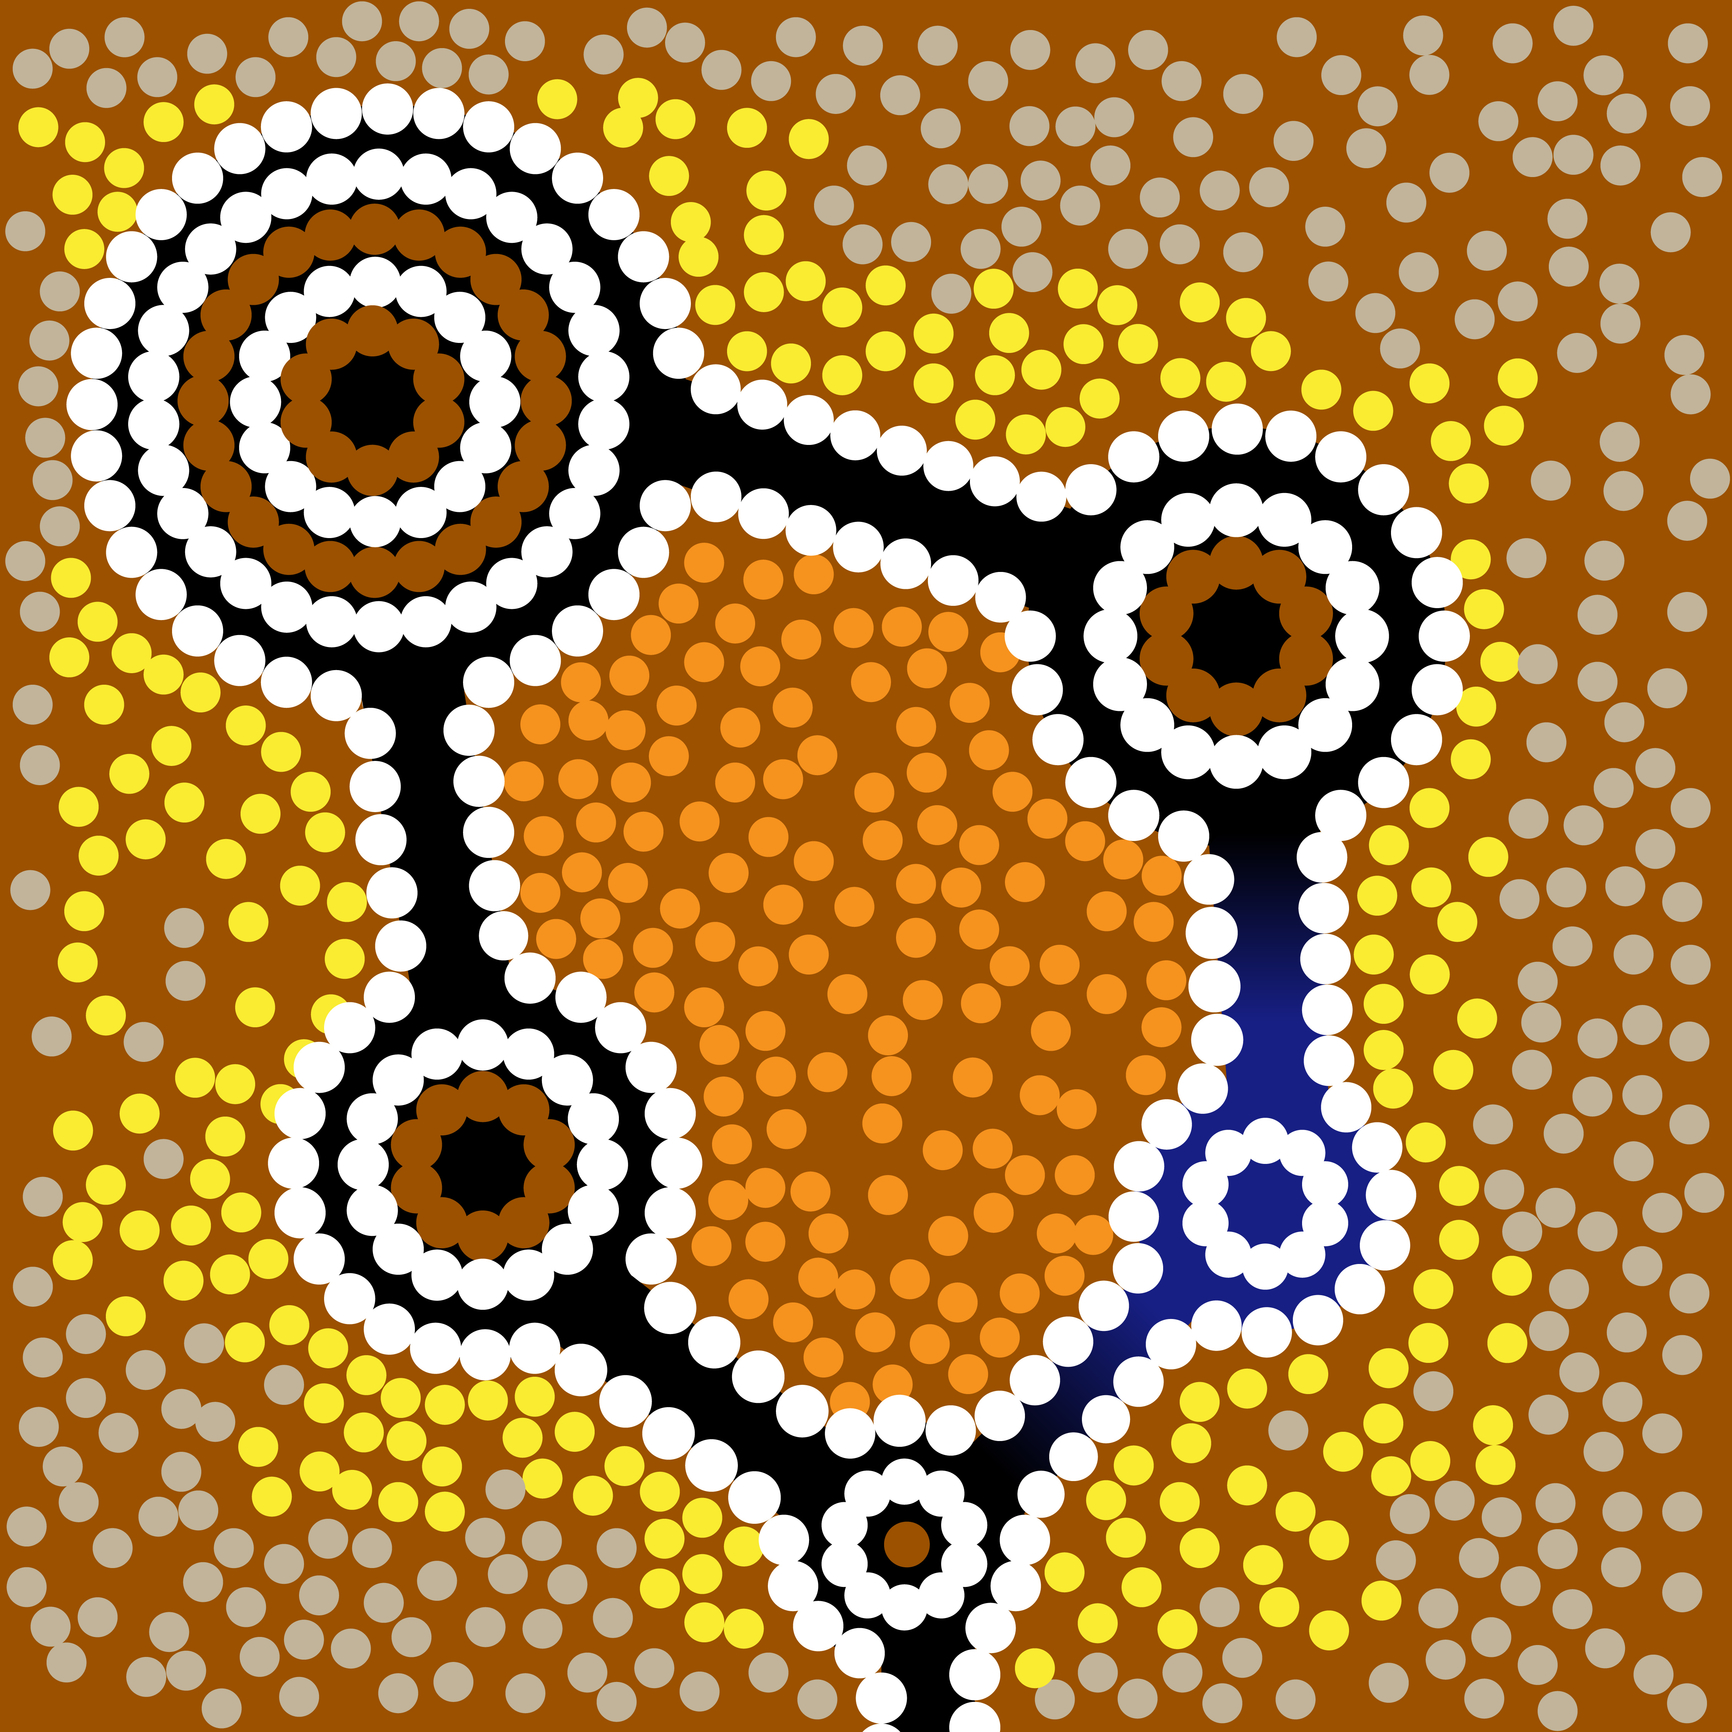 aboriginal-art-vector-background